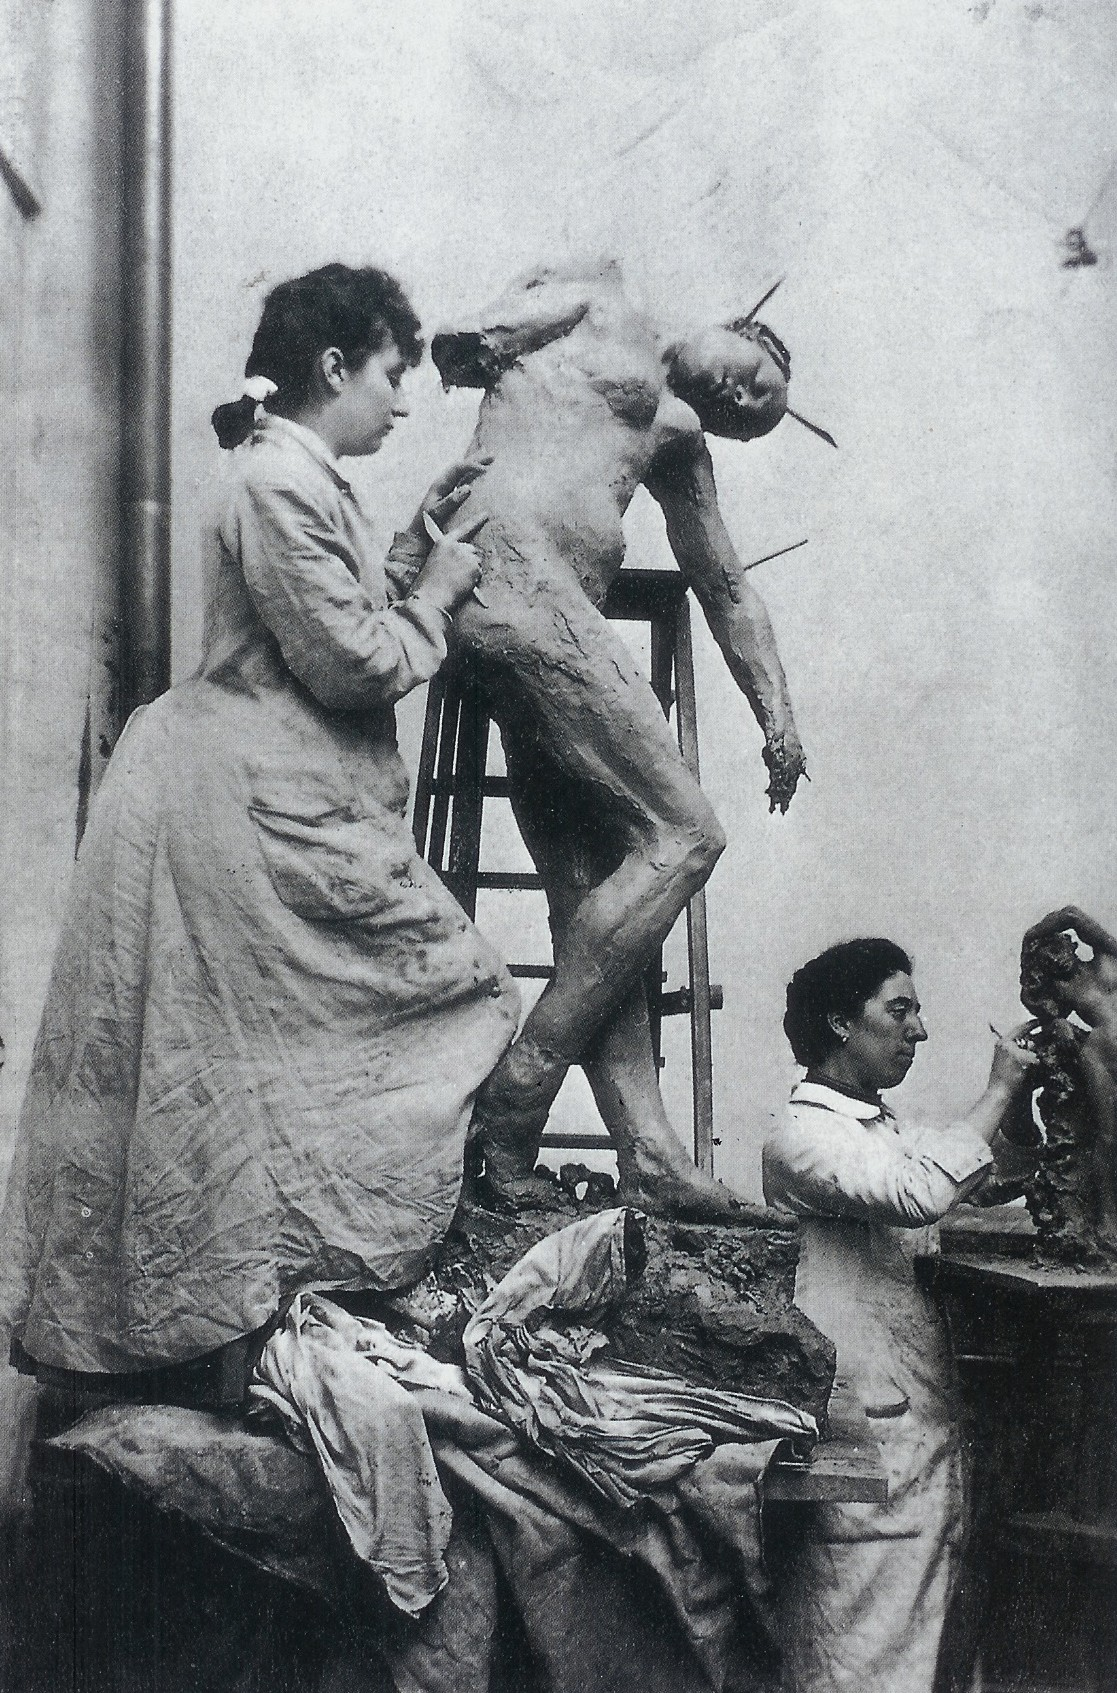 """Camille Claudel atelier"" by Unknown - http://the100.ru/en/womens/camille-claudel.htmlhttp://theredlist.fr/wiki-2-24-224-268-view-culture-art-fashion-profile-camille-claudel-auguste-rodin.html. Licensed under Public domain via Wikimedia Commons - http://commons.wikimedia.org/wiki/File:Camille_Claudel_atelier.jpg#mediaviewer/File:Camille_Claudel_atelier.jpg"